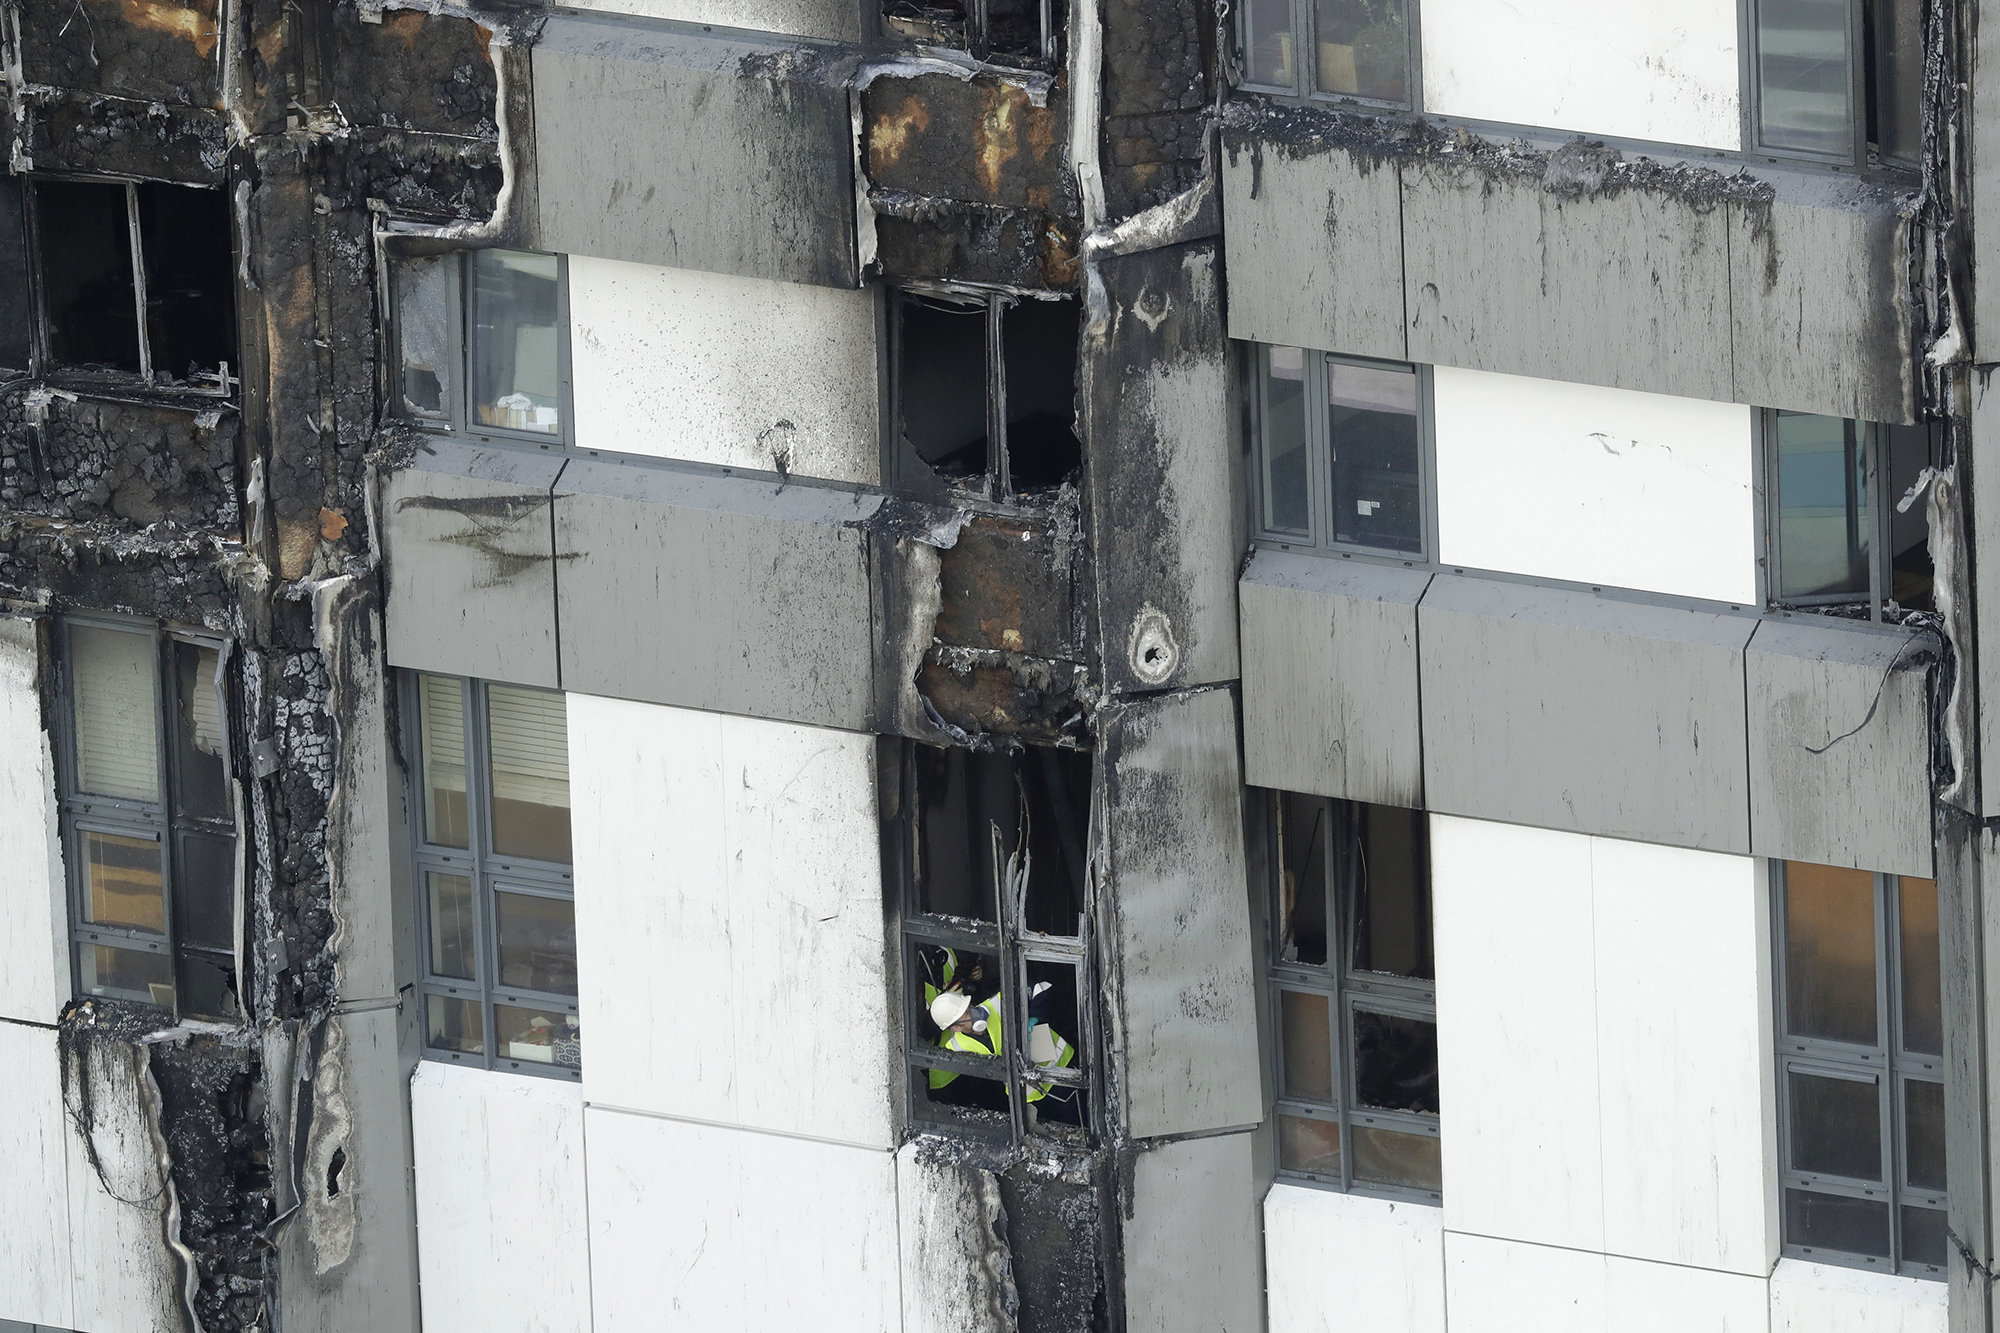 Grenfell Tower Fire Safety Tests Continue Architect